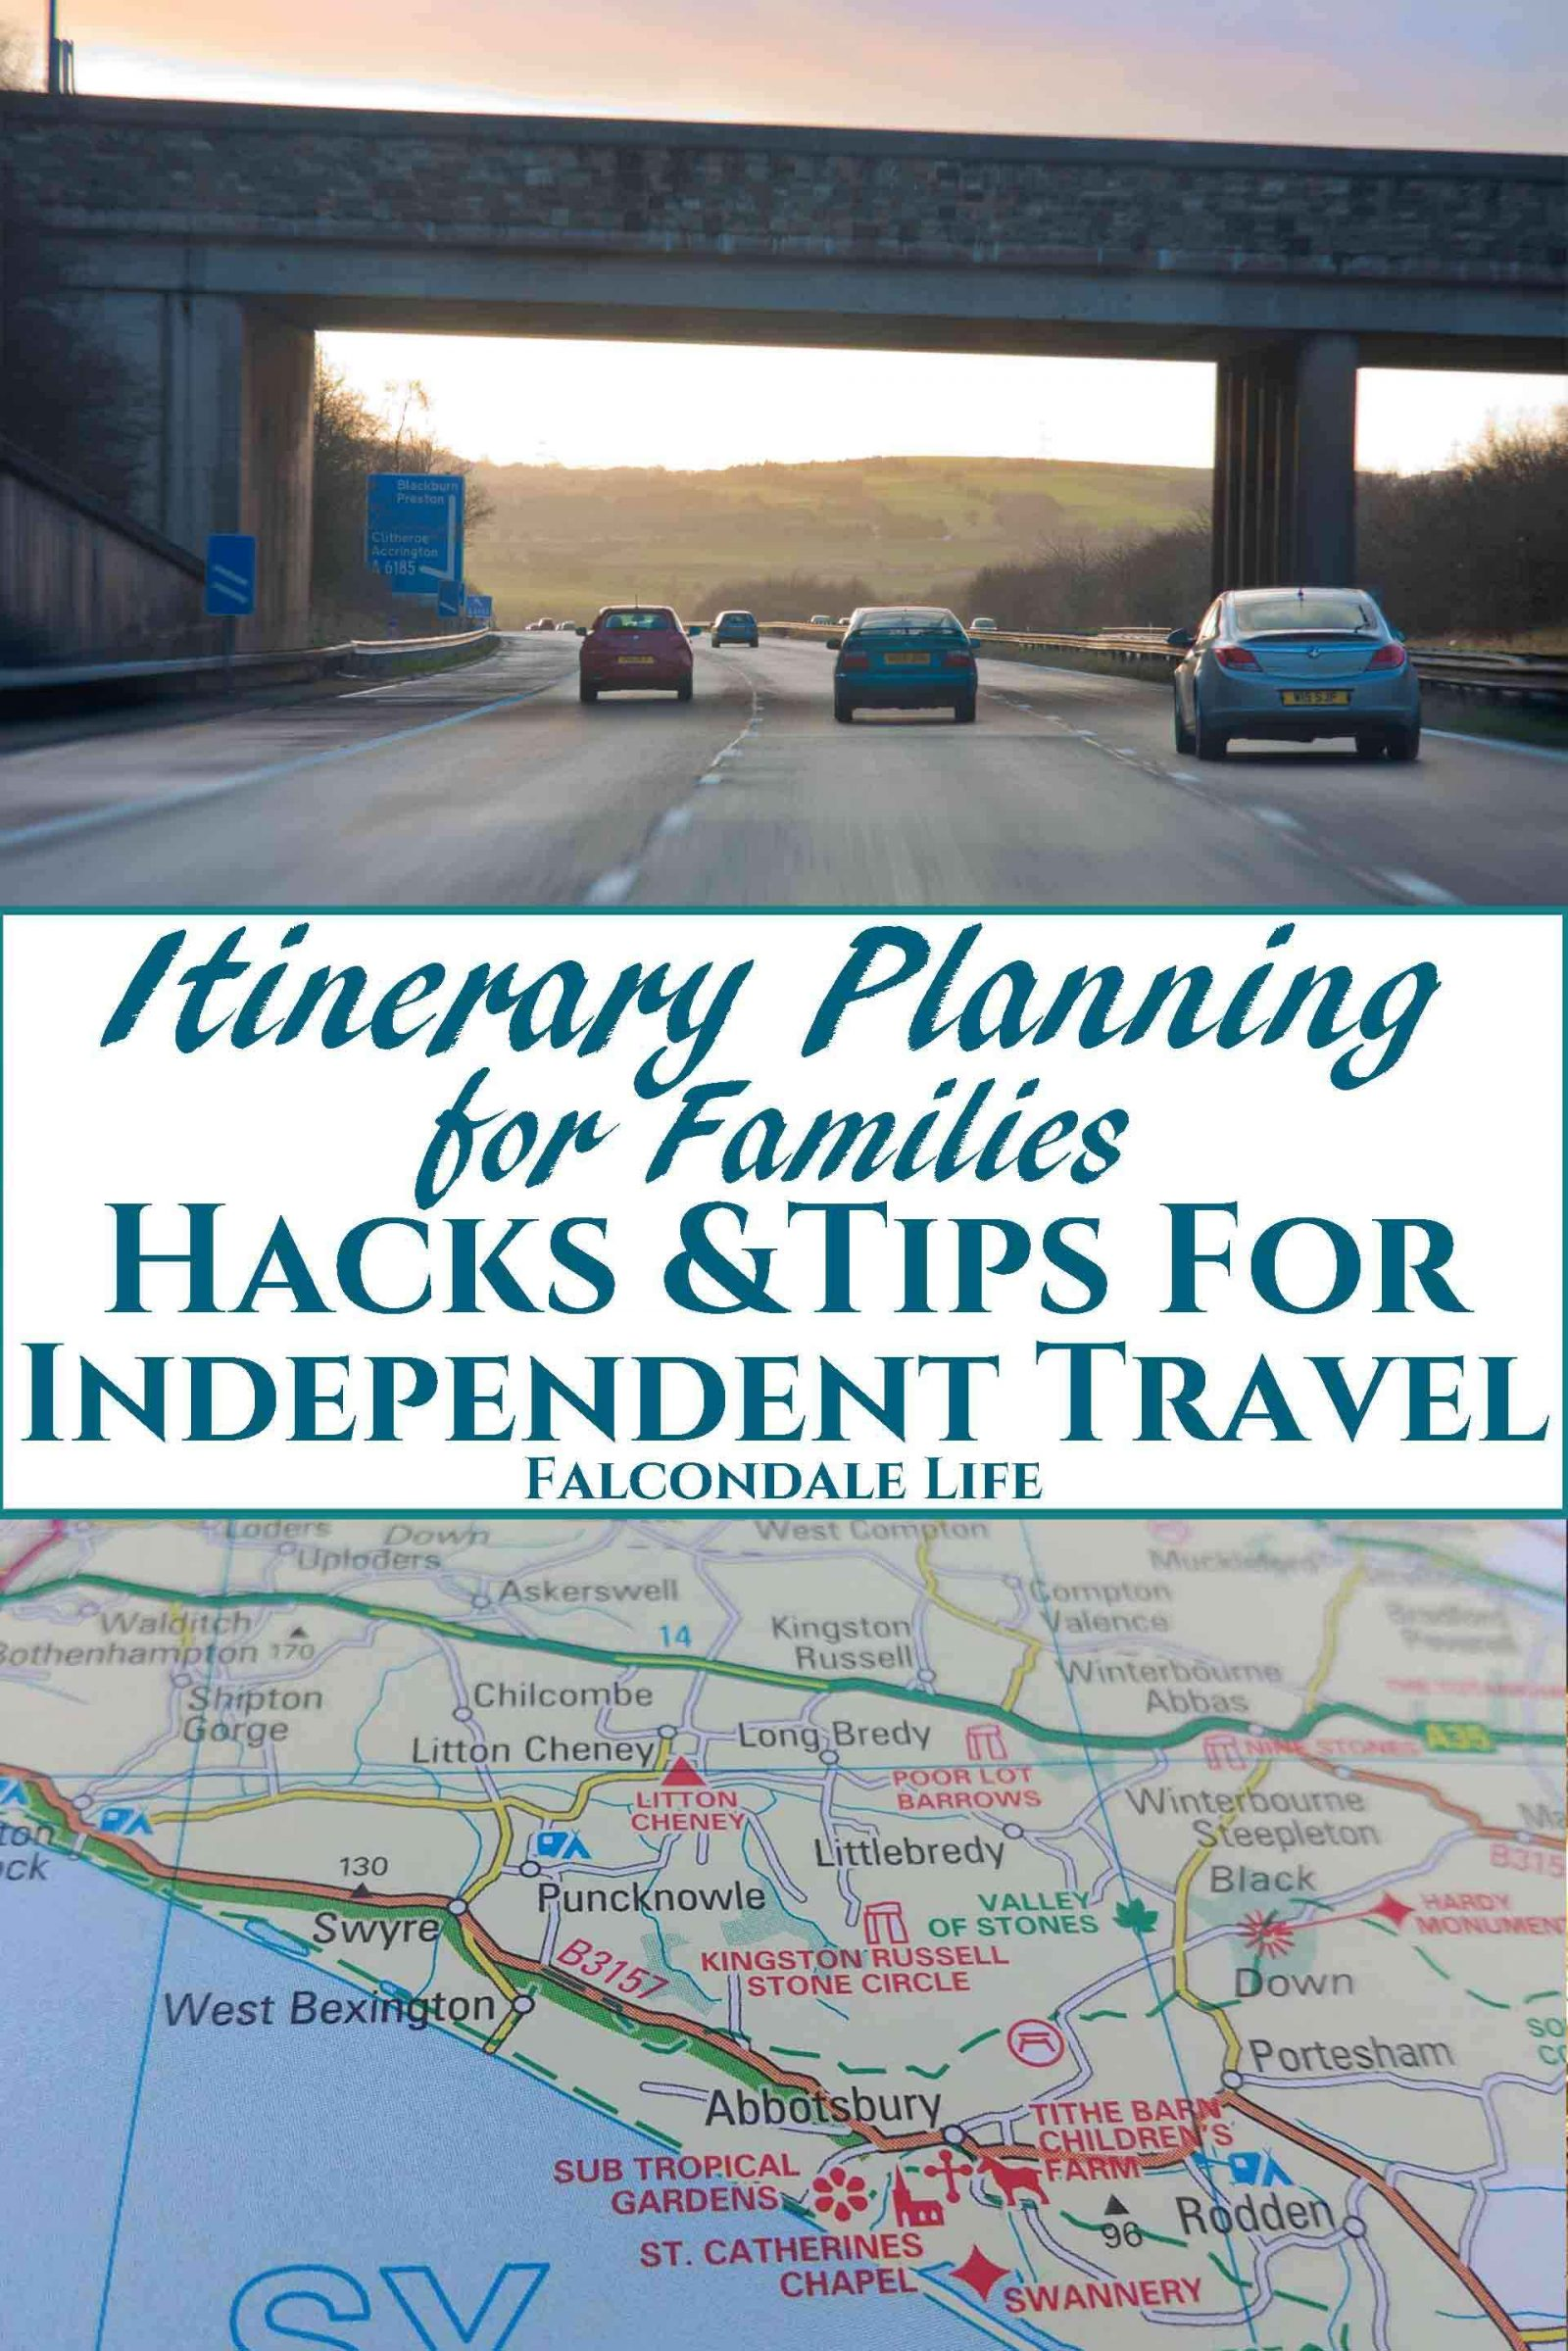 Unusual tips and hacks for independent itinerary planning for family holidays. Find ideas for road trips and self catering vacations that others may miss. Itinerary planning for families - hacks and tips for independent travel on Falcondale Life blog. Image description: cars on a motorway and a printed road atlas plus blog title